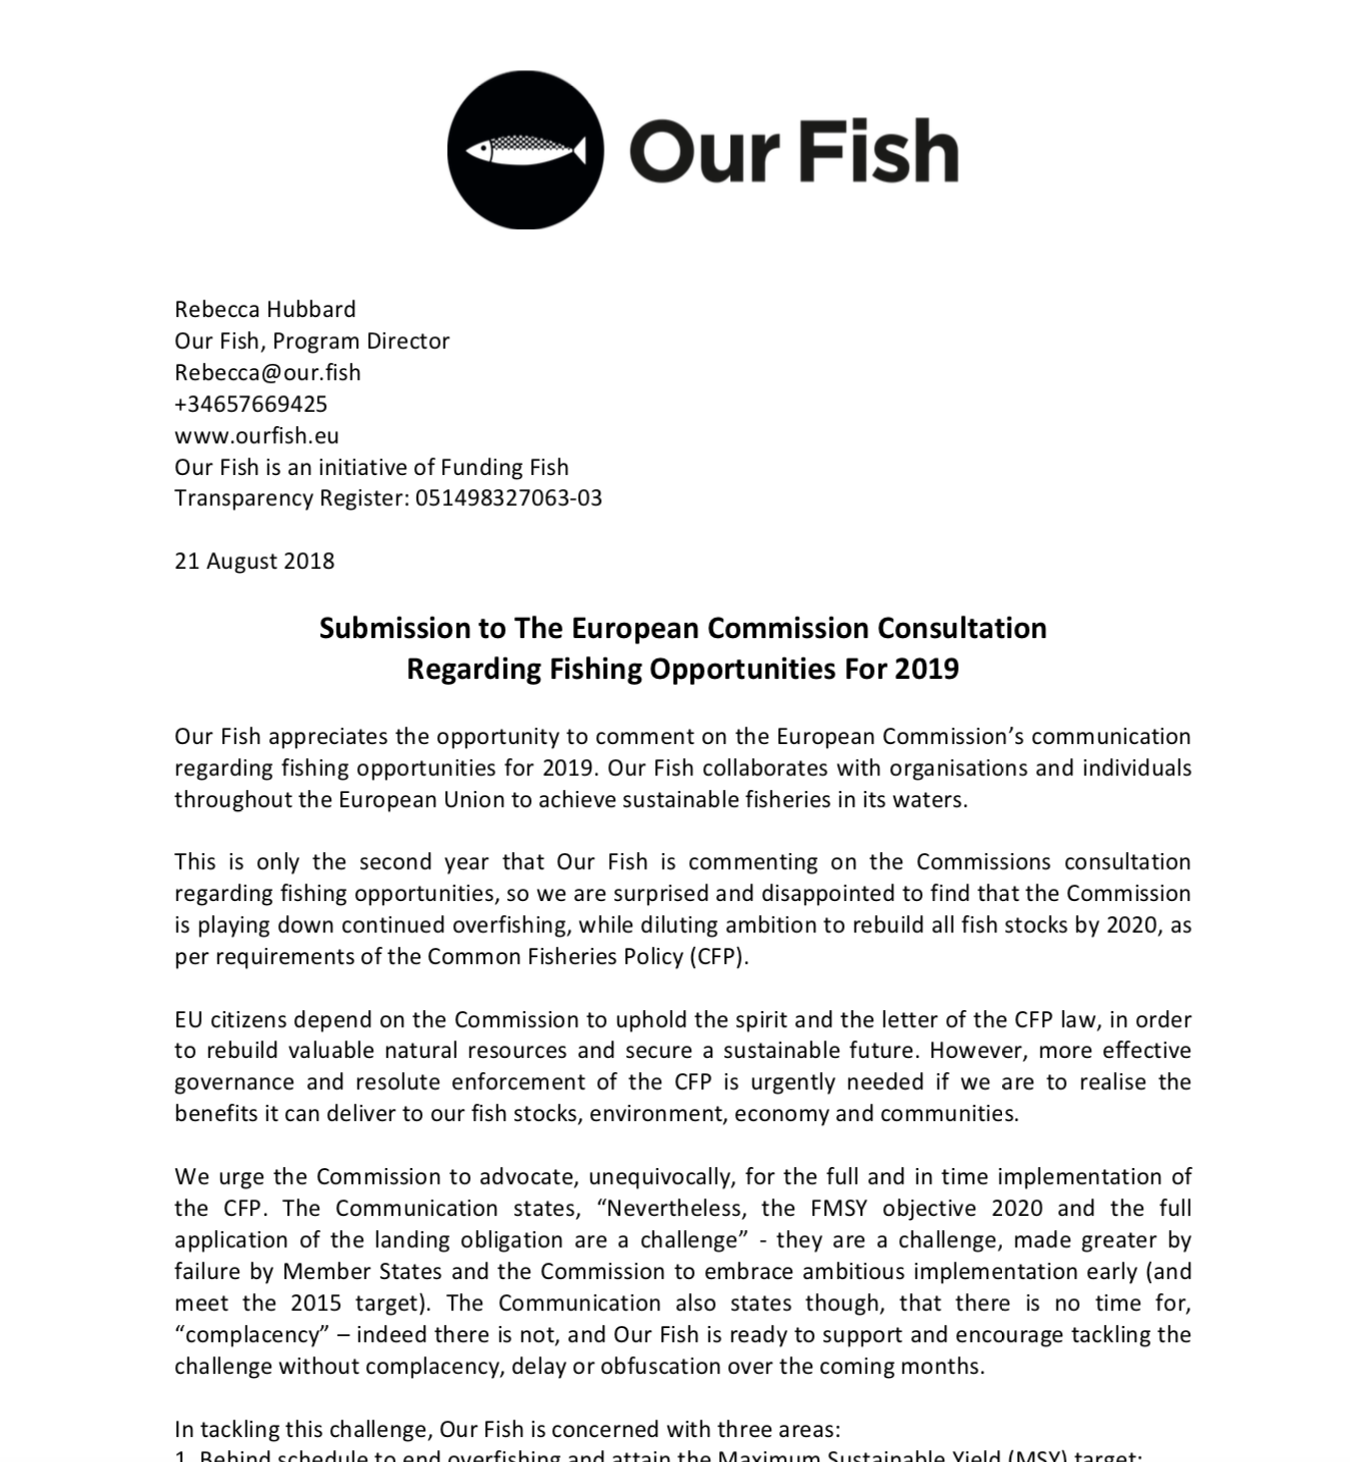 Our Fish Submission to The European Commission Consultation Regarding Fishing Opportunities For 2019